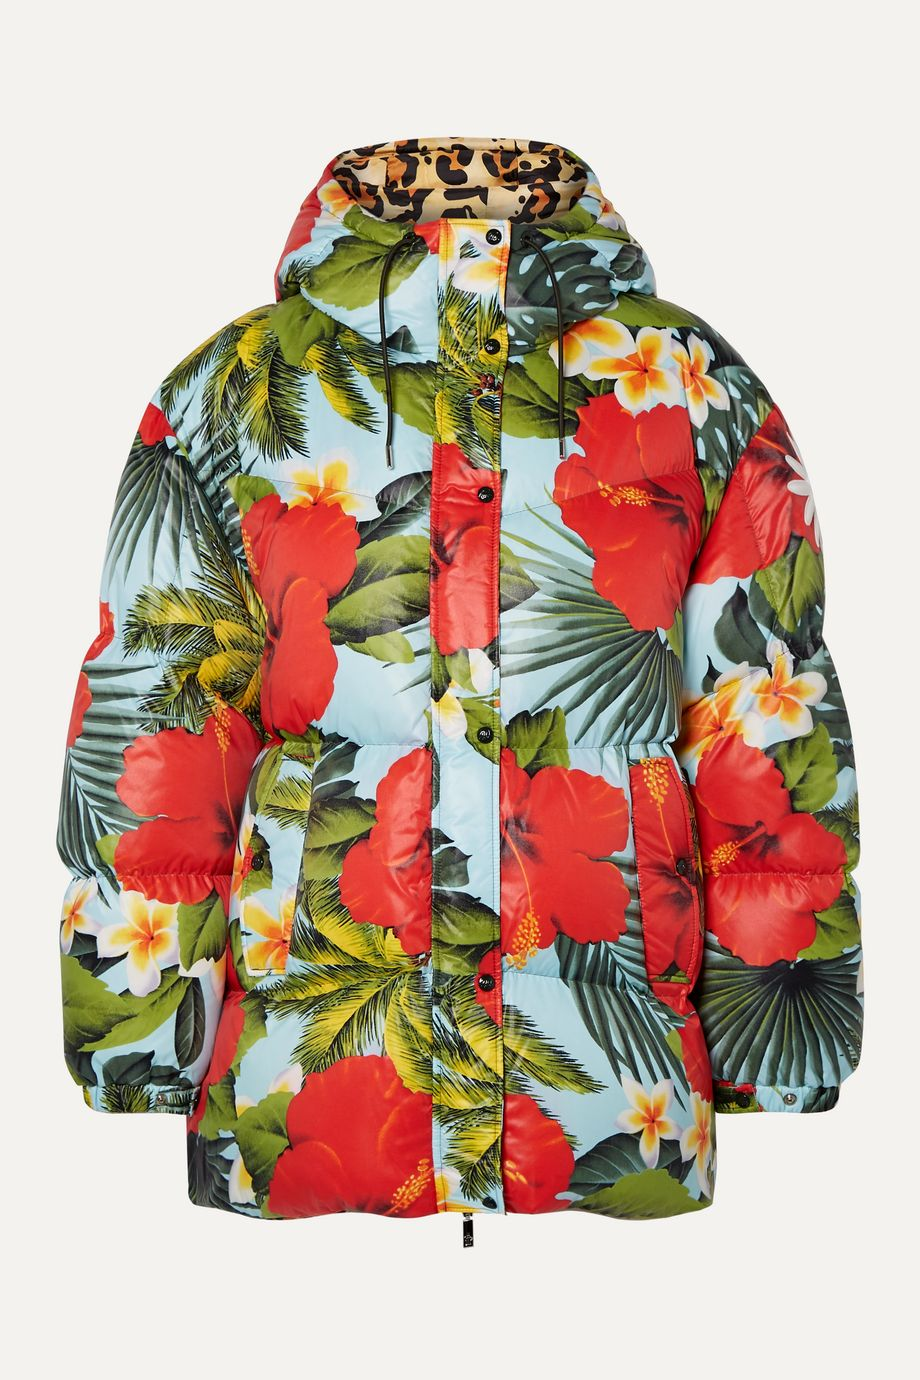 Moncler Genius + 0 Richard Quinn Mary oversized hooded printed quilted shell down jacket